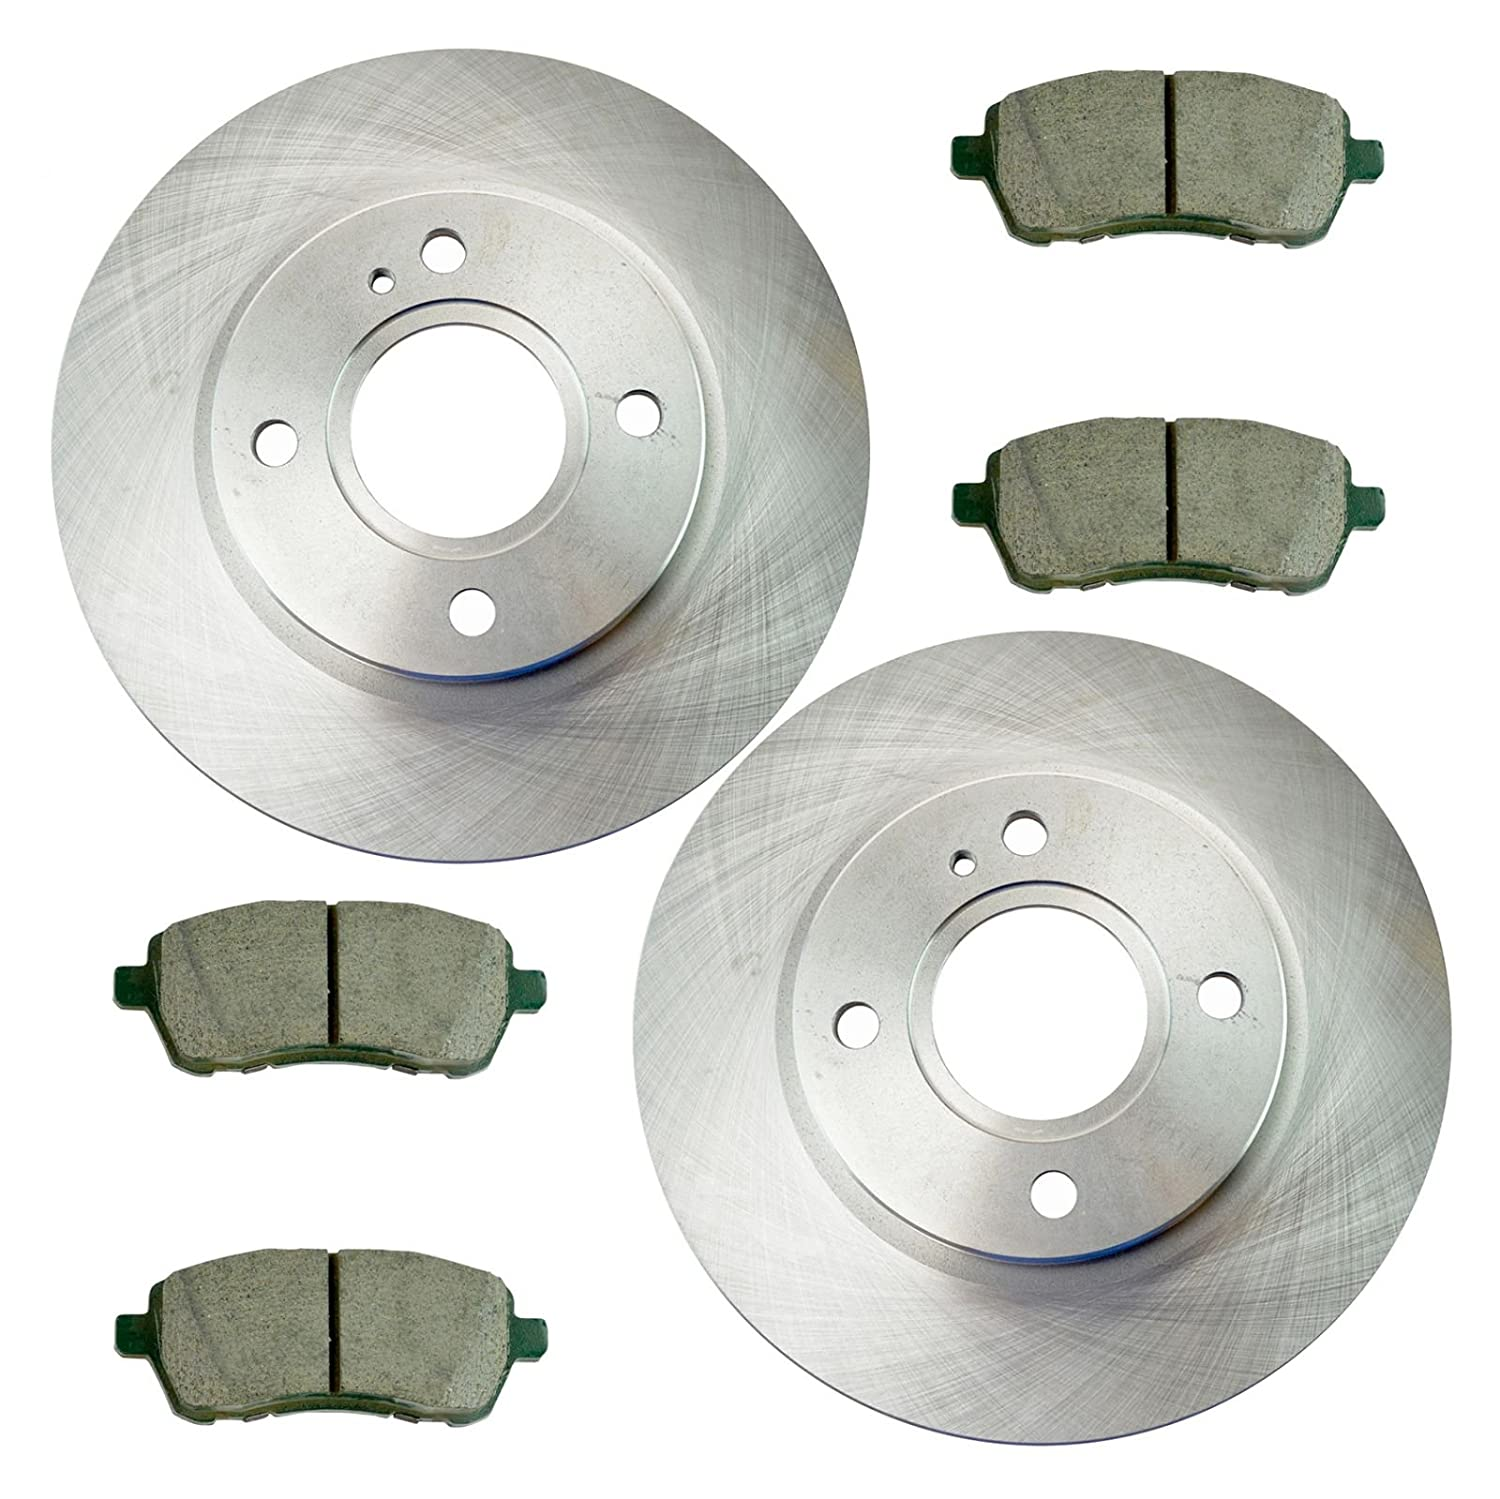 Amazon.com: Front Disc Brake Rotor & Posi Ceramic Pad Kit for Ford Fiesta: Automotive